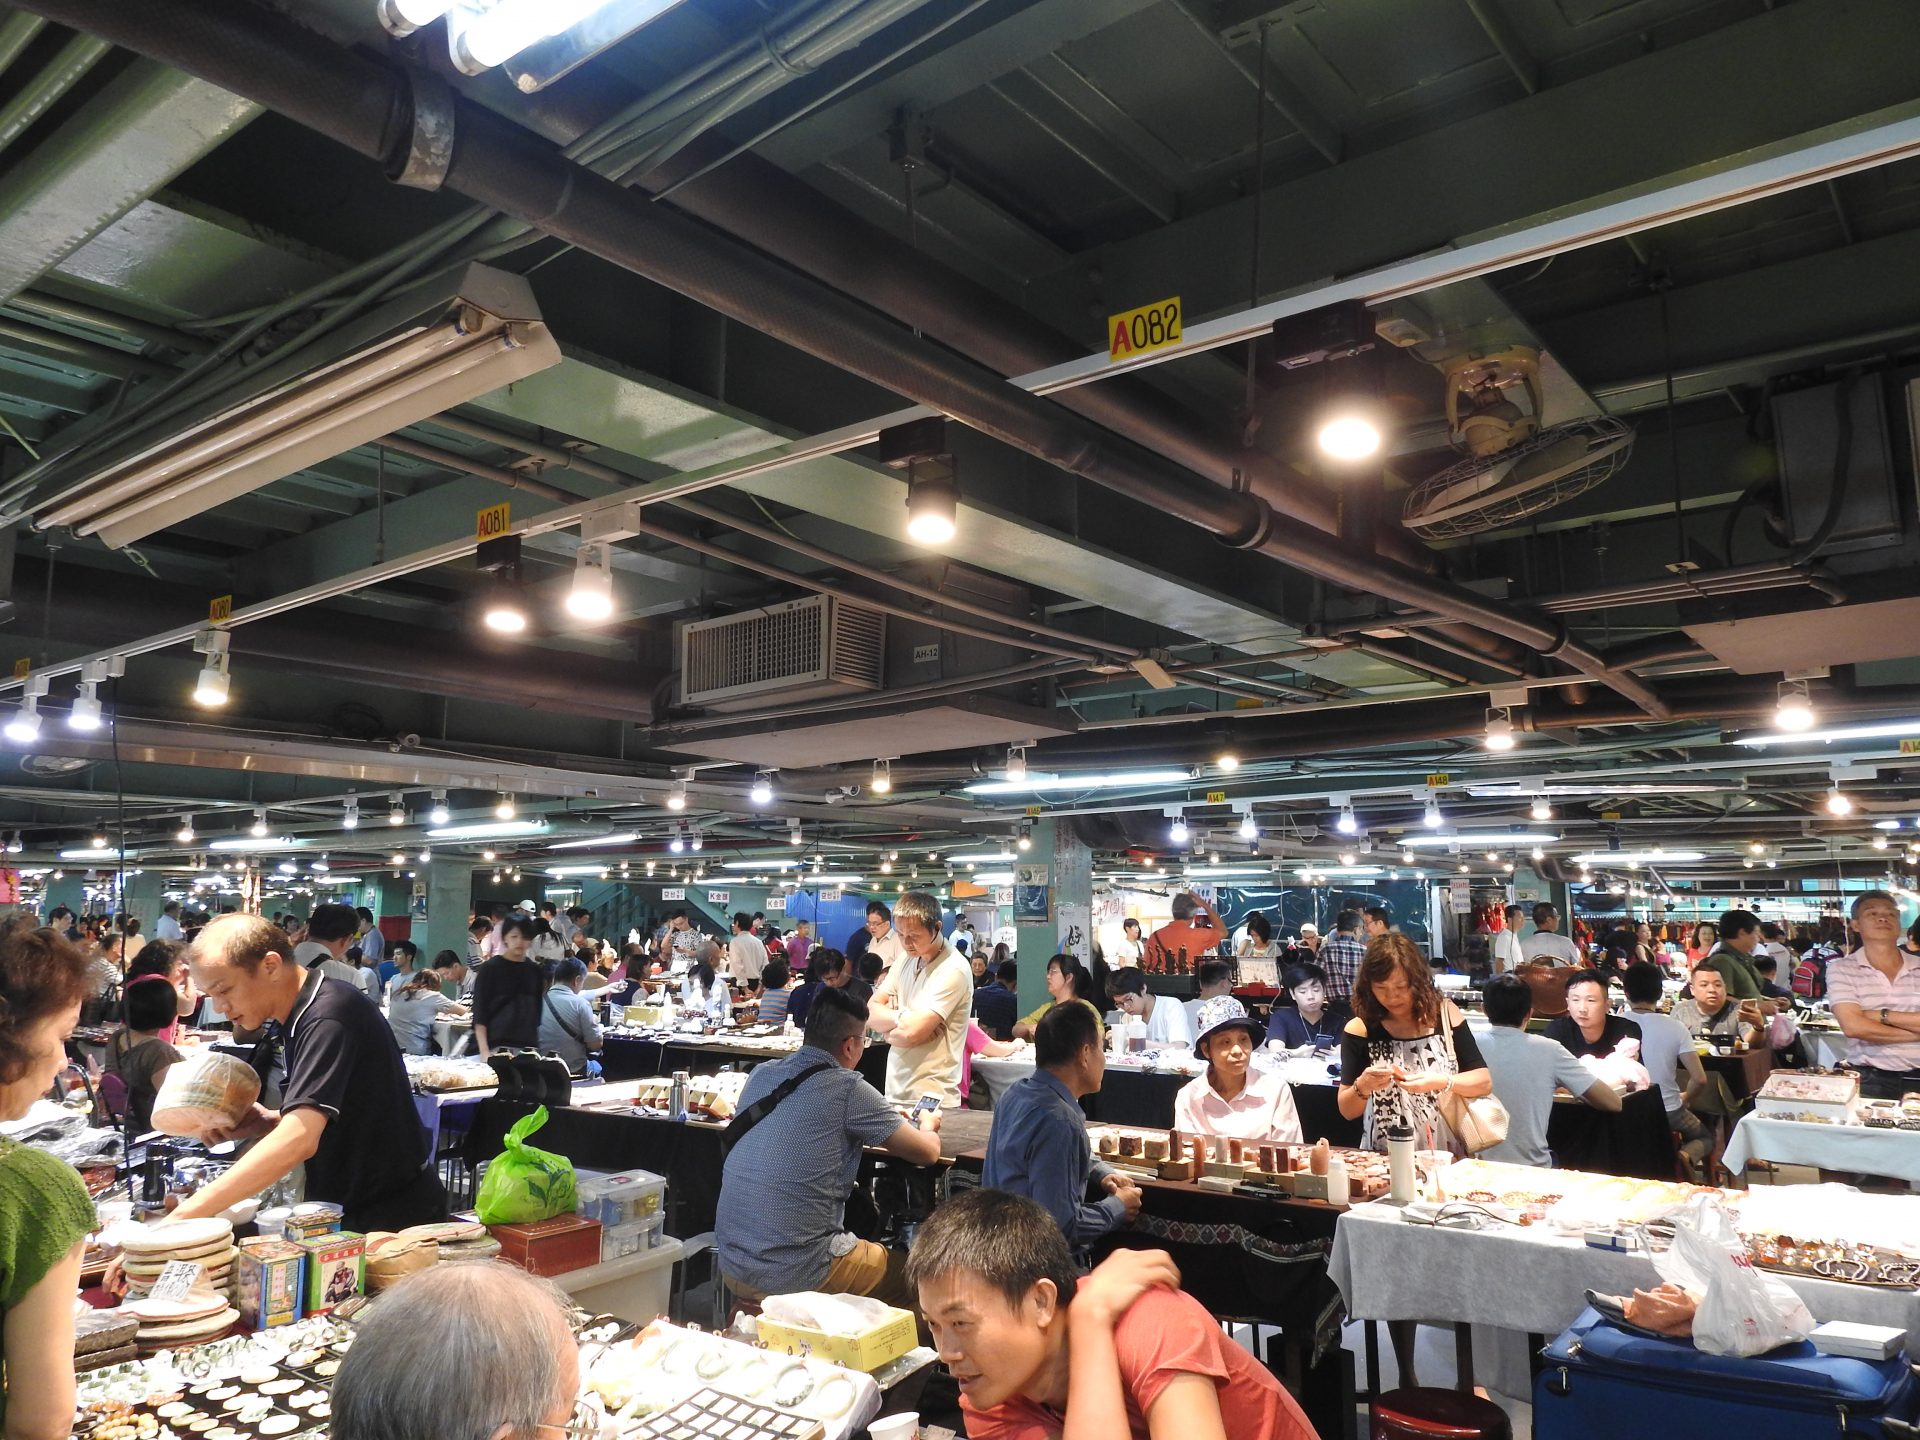 Taipei Jianguo Holiday Jade Market houses about 1,000 jade, stone and curio vendors. (Image: Billy Shyu/ Vision Times)